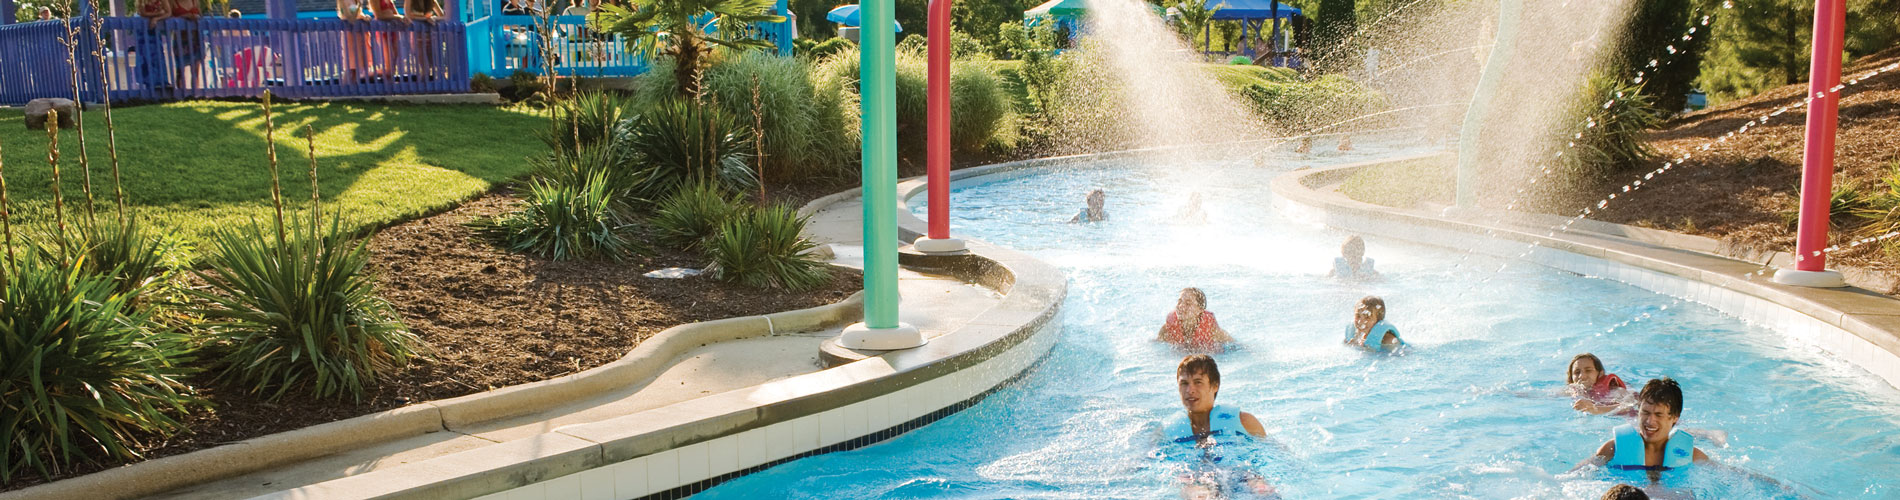 Hubba Hubba Highway - lazy river adventure at Water Country USA